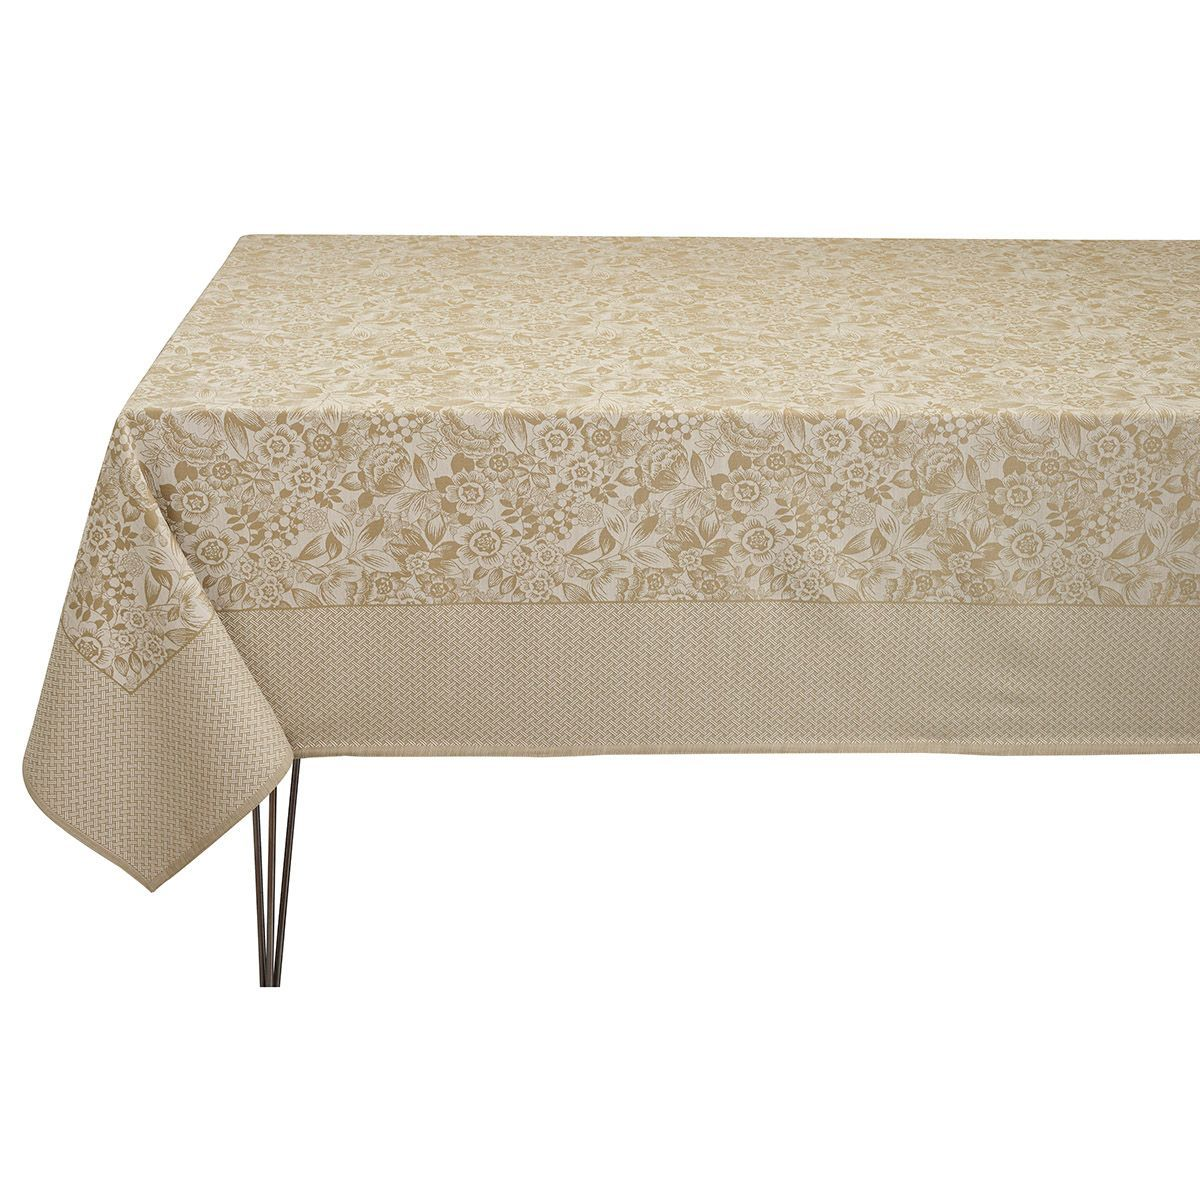 Osmose Cork Coated Tablecloths